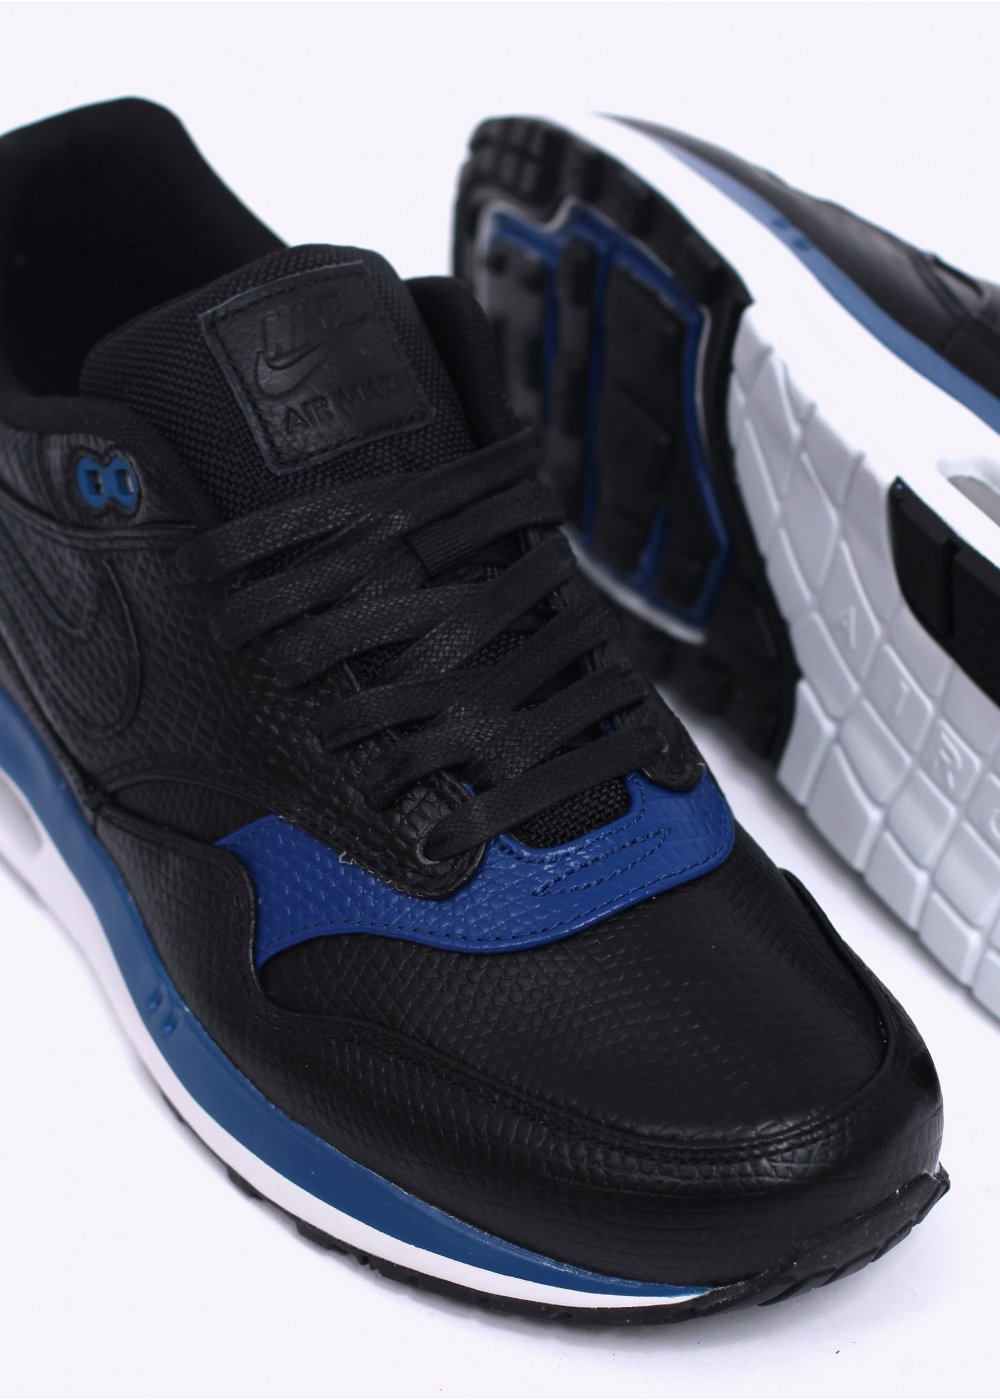 4859f9c72bdf Nike Air Max Lunar 1 Deluxe Trainers - Black   Gym Blue